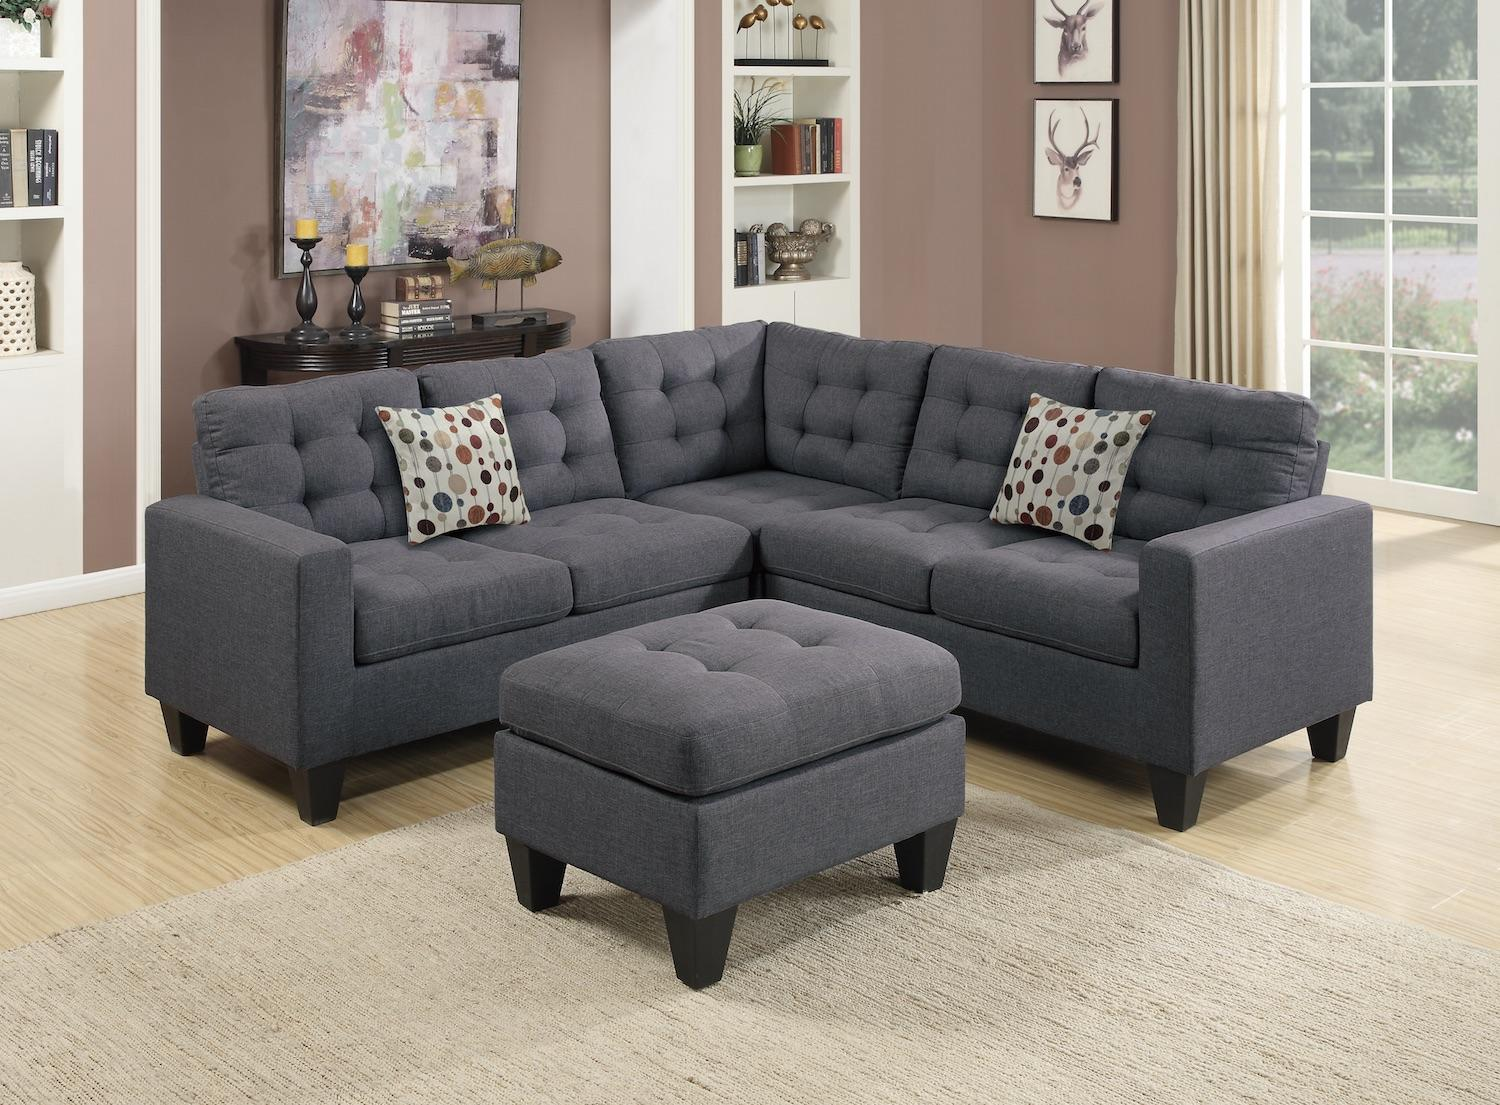 4pcs Sectional with Ottoman Set, Grey